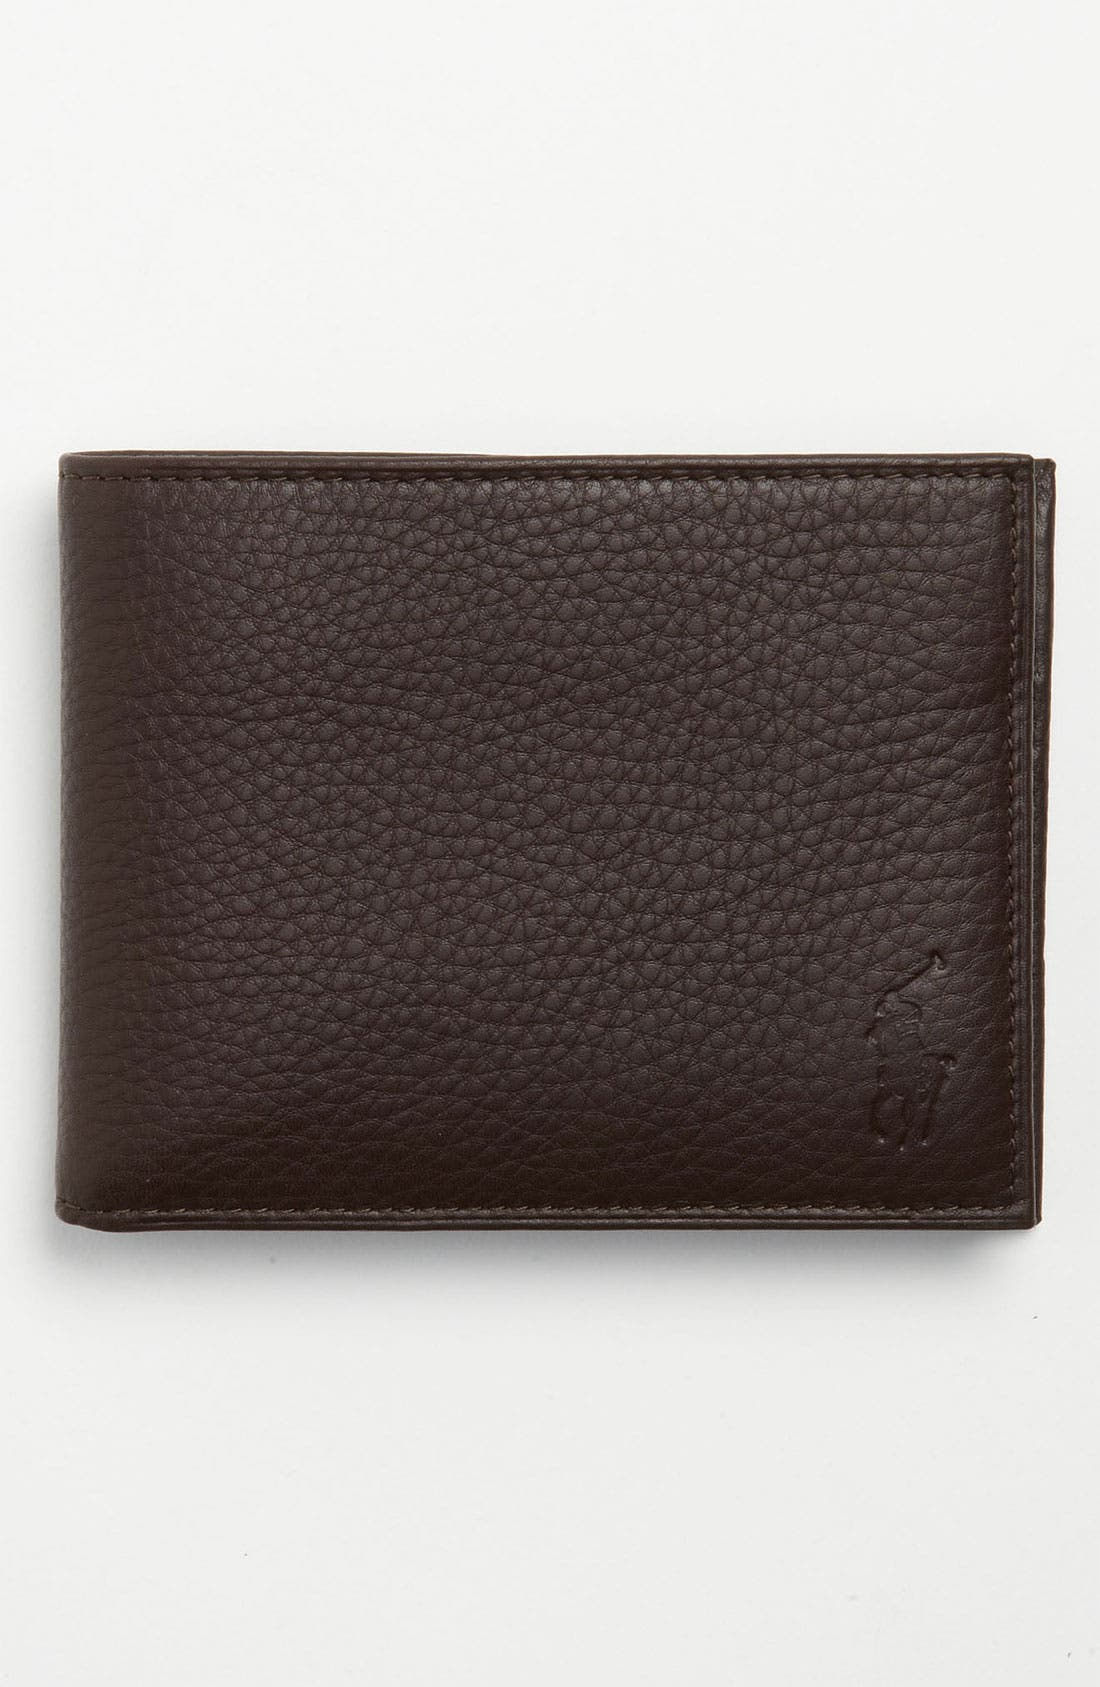 Polo Ralph Lauren Leather Passcase Wallet